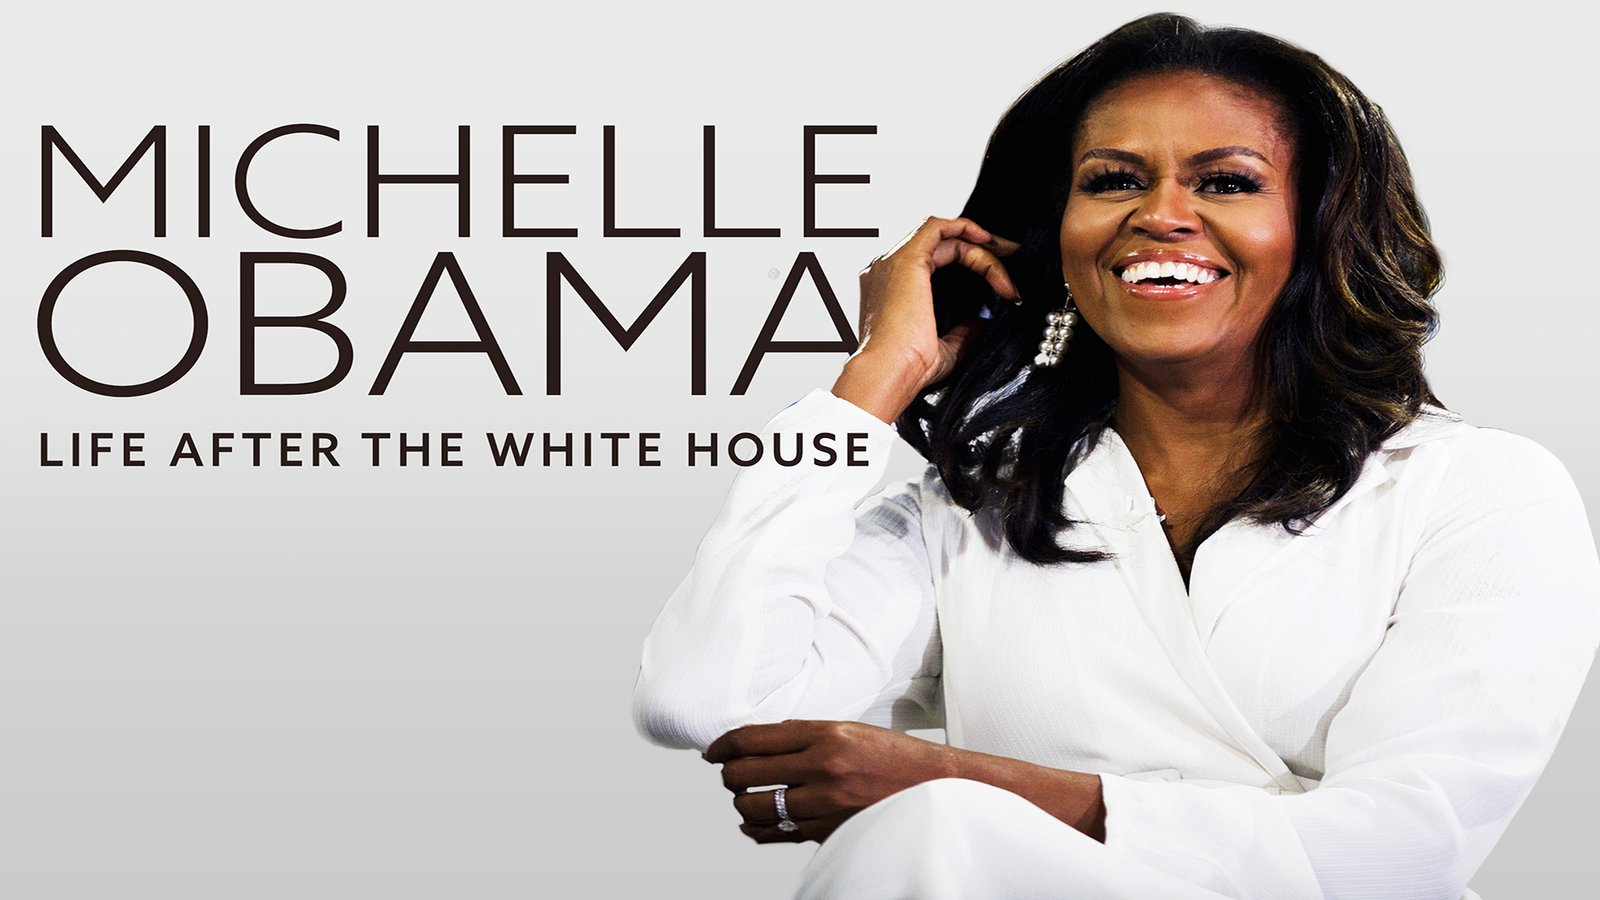 Michelle Obama: Life After the White House